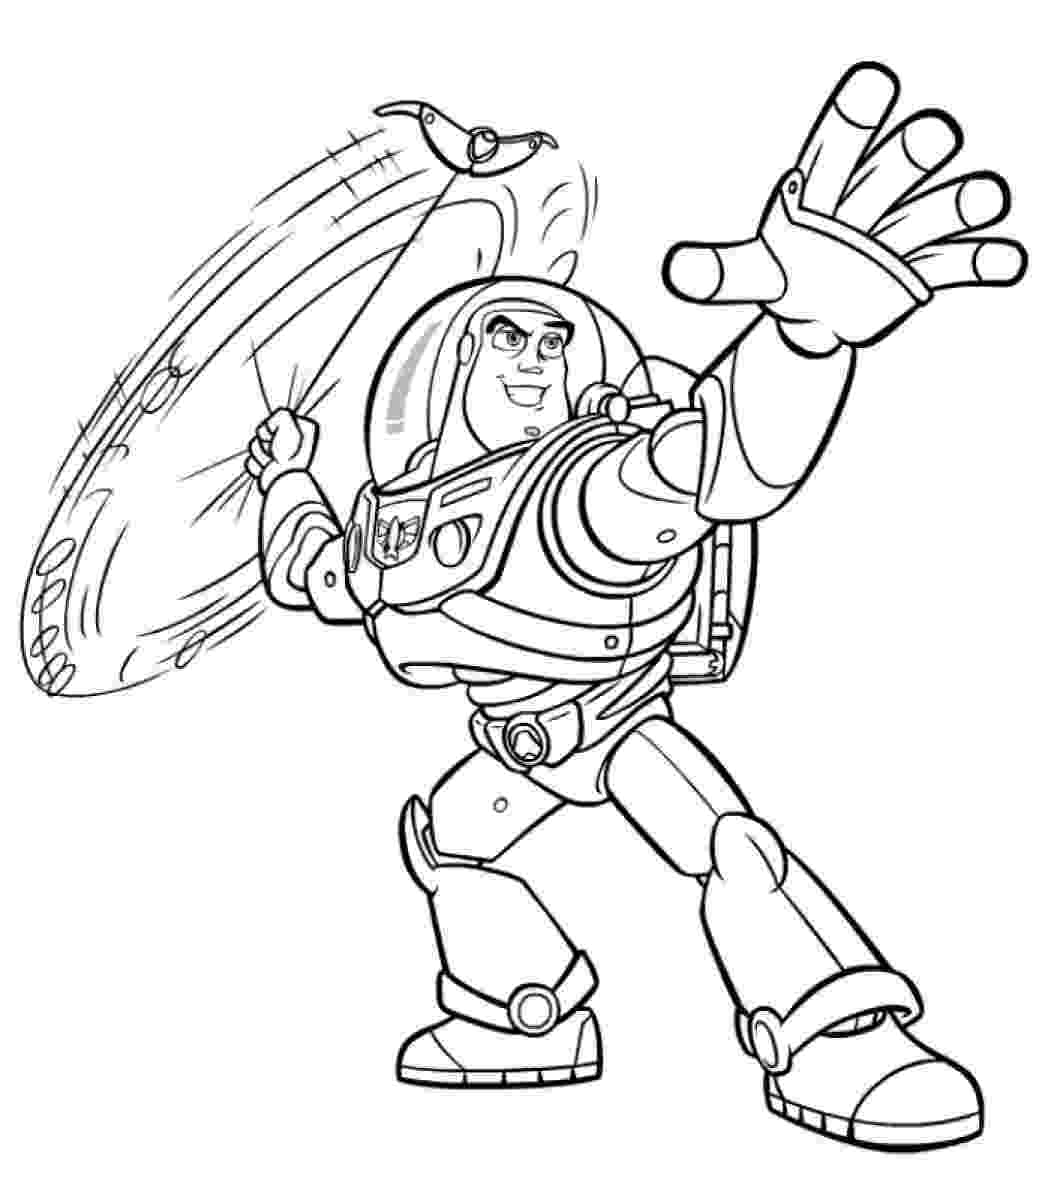 buzz lightyear coloring pages buzz lightyear coloring pages coloring pages to print pages lightyear coloring buzz